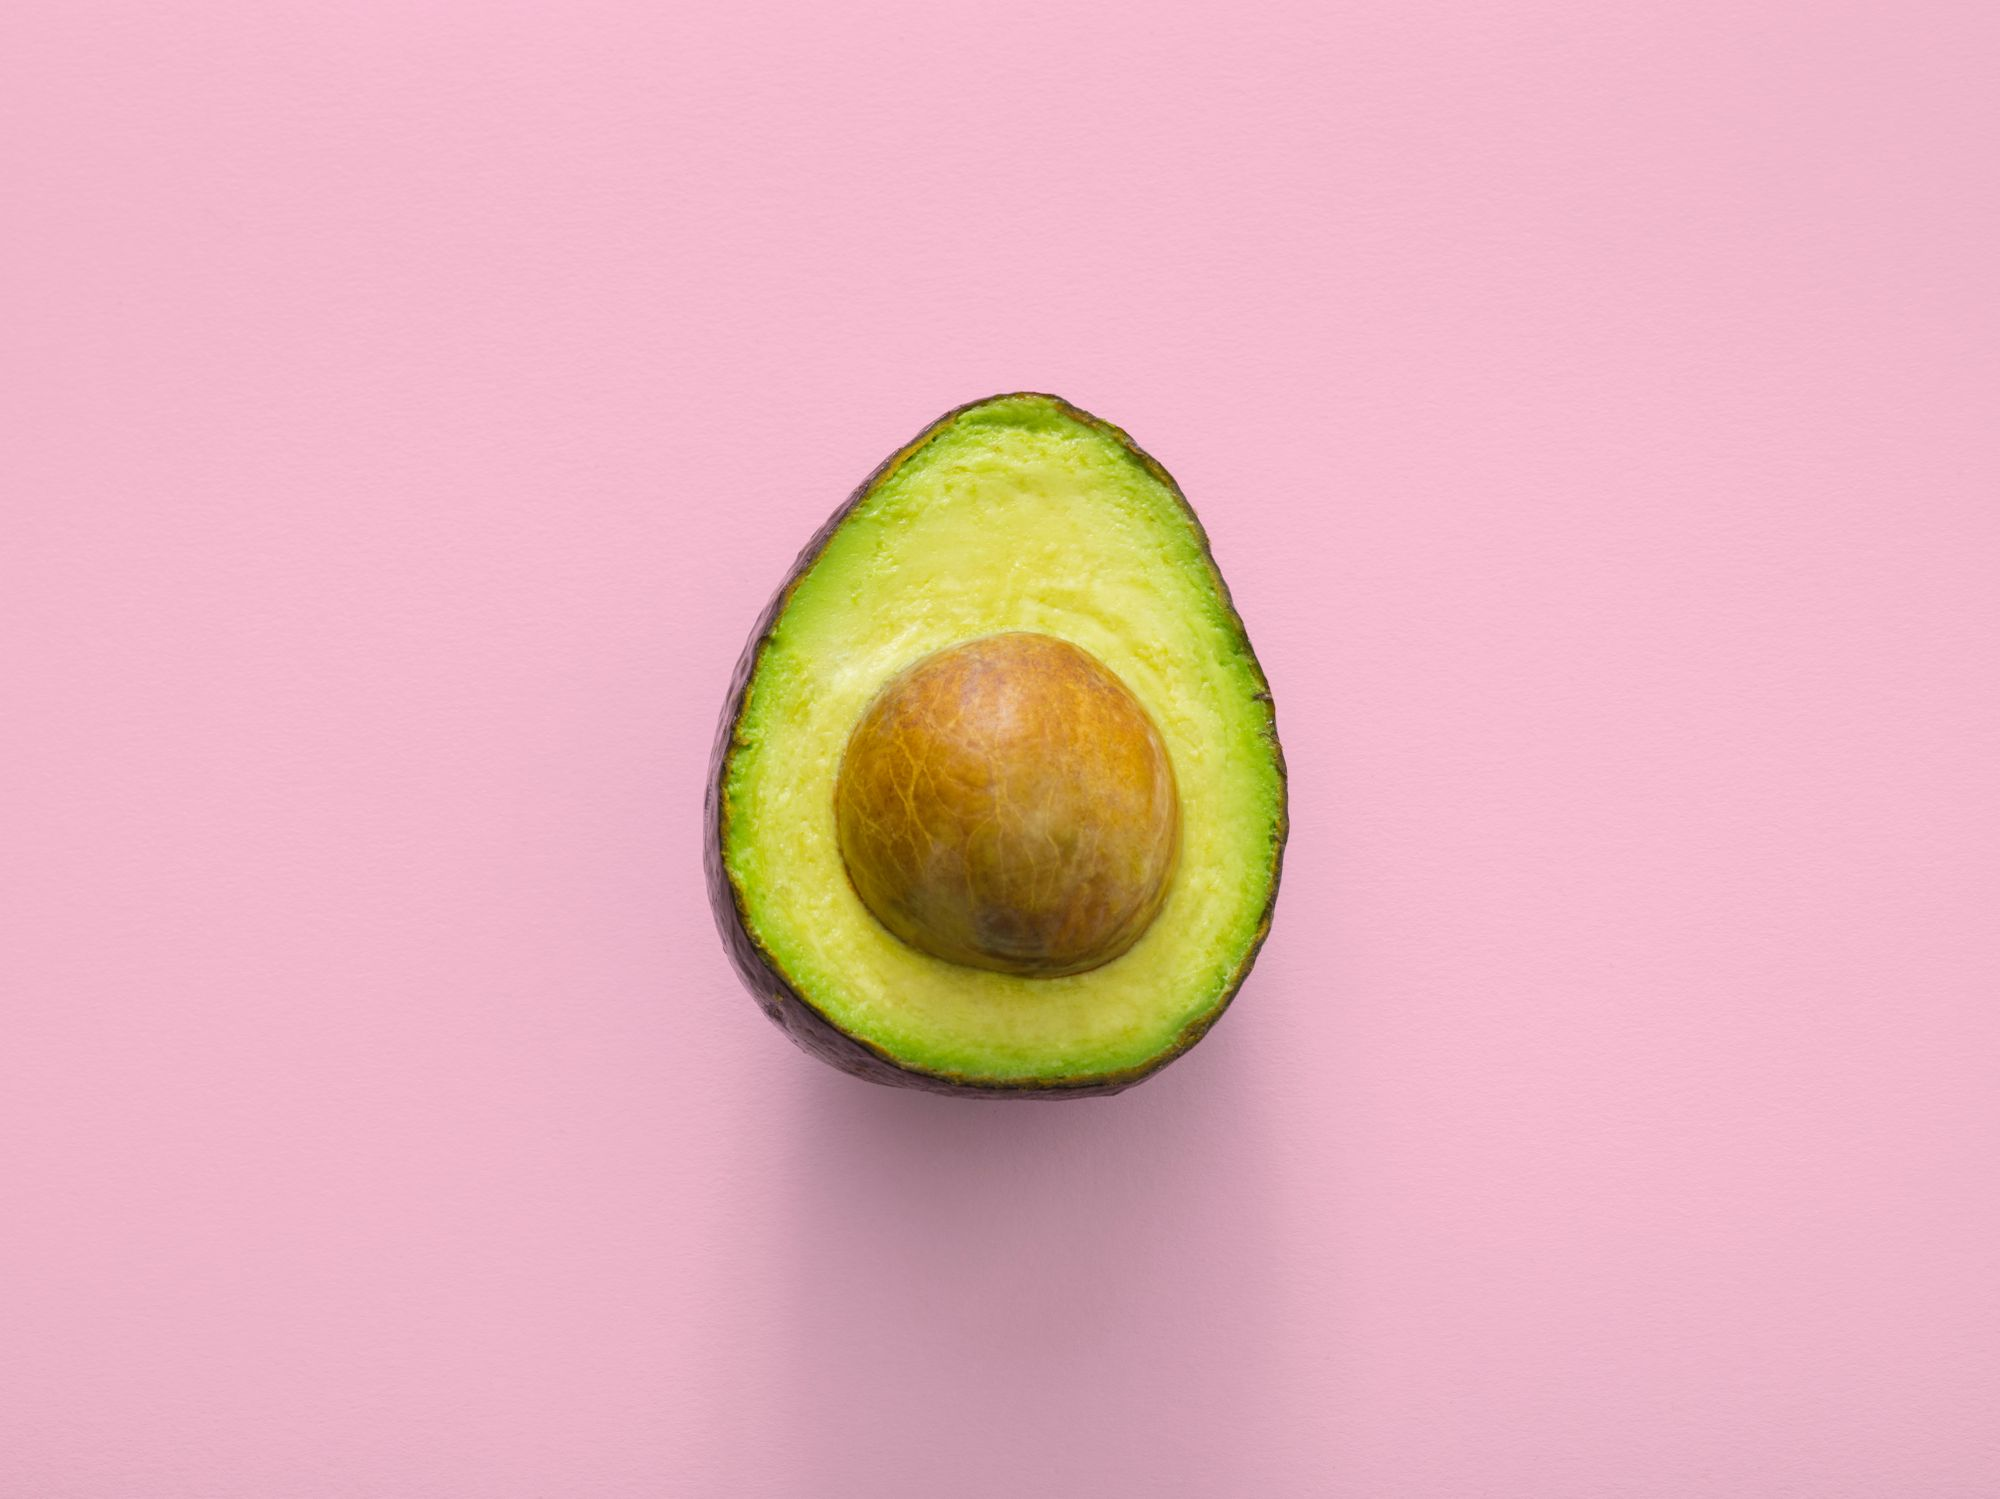 Can Dogs Eat Avocados? Photo of Avocado Cut in Half